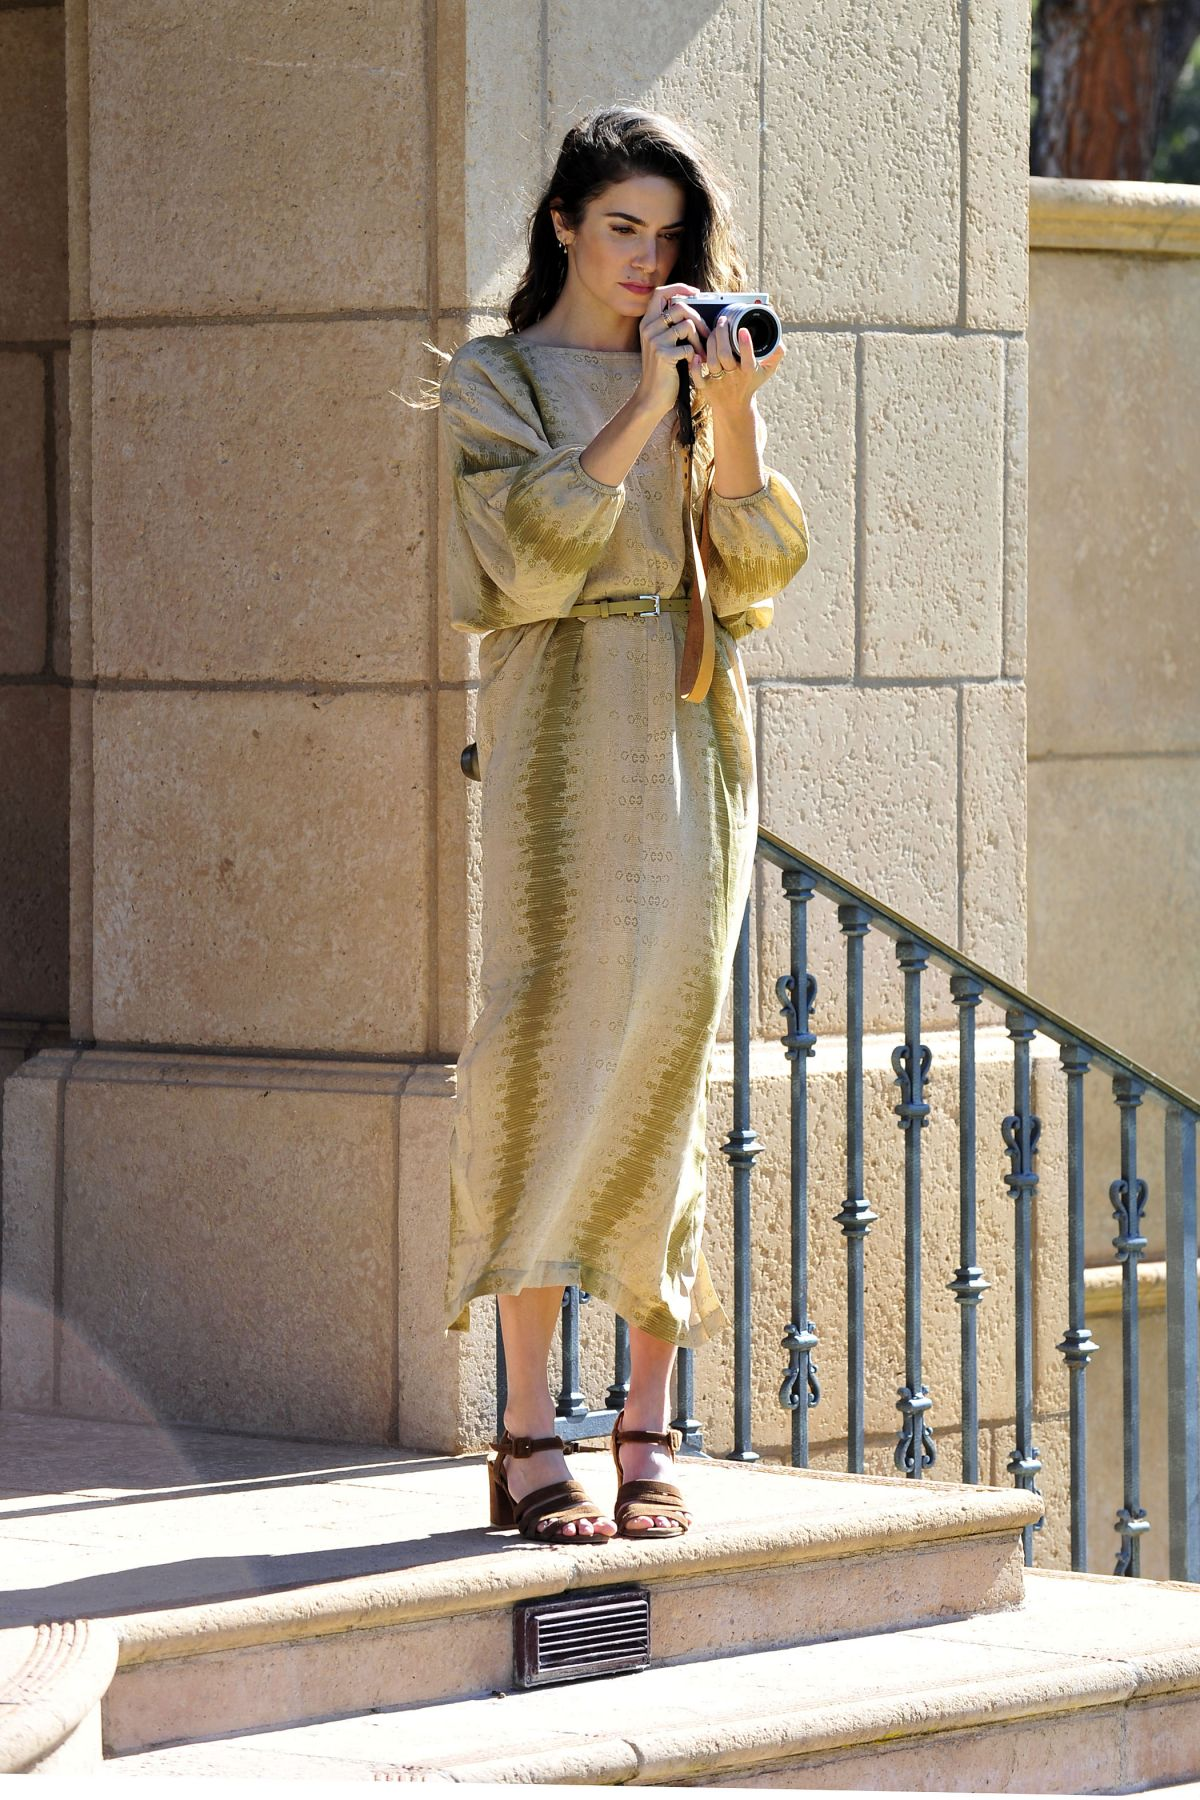 NIKKI REED at Fairmont Grand Del Mar Hotel in San Diego 04/01/2018 - HawtCelebs